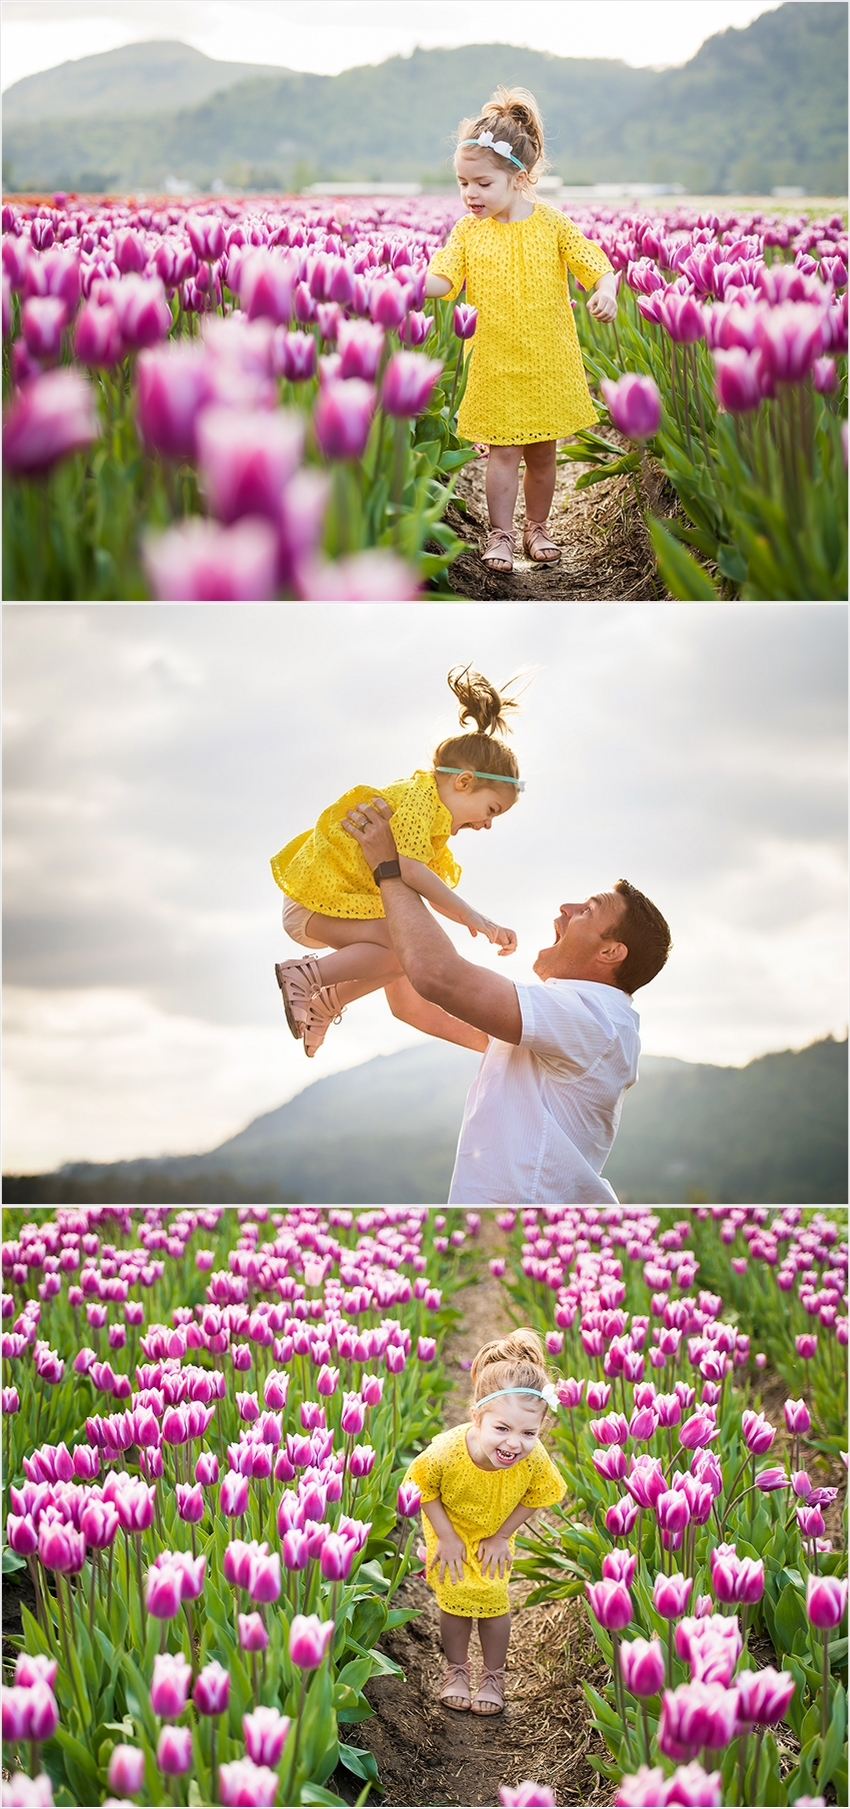 Family Photography, tulip field, childrens photography 003 (Side 3)